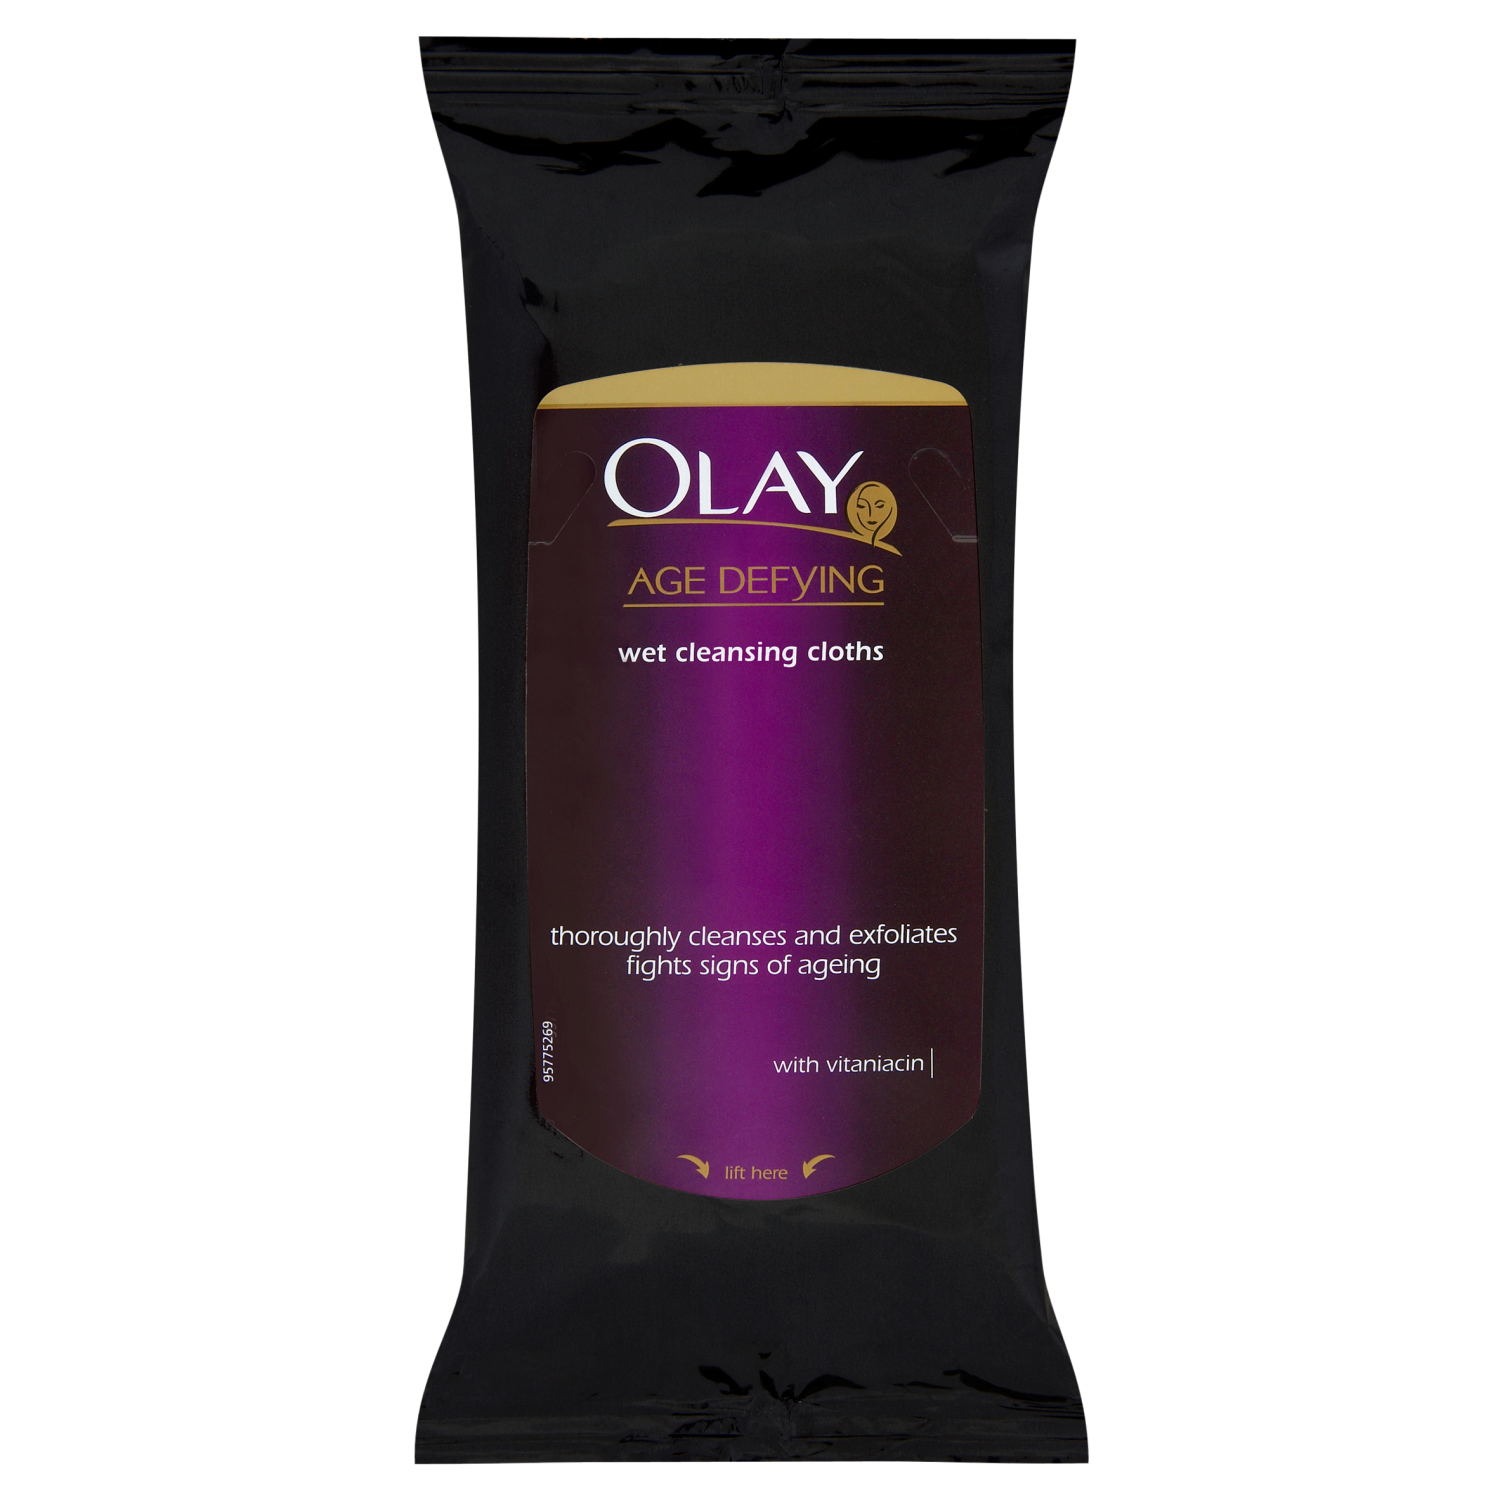 Olay Age-Defying Wet Cleansing Cloths 20